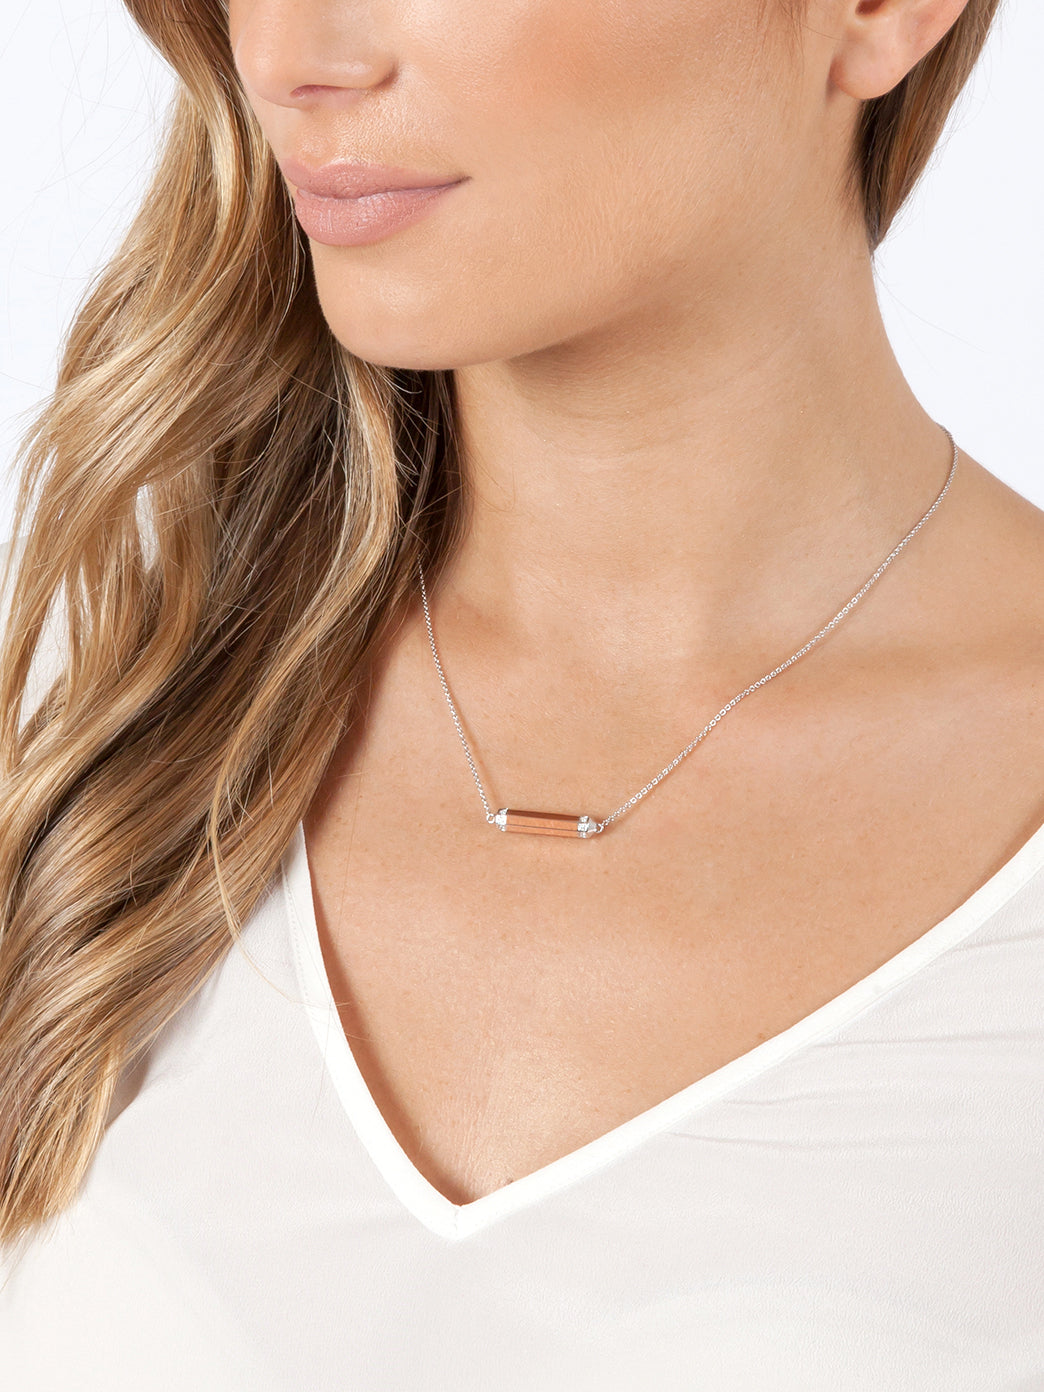 Fiorina Jewellery Manifest Necklace Rose Gold Bar Model